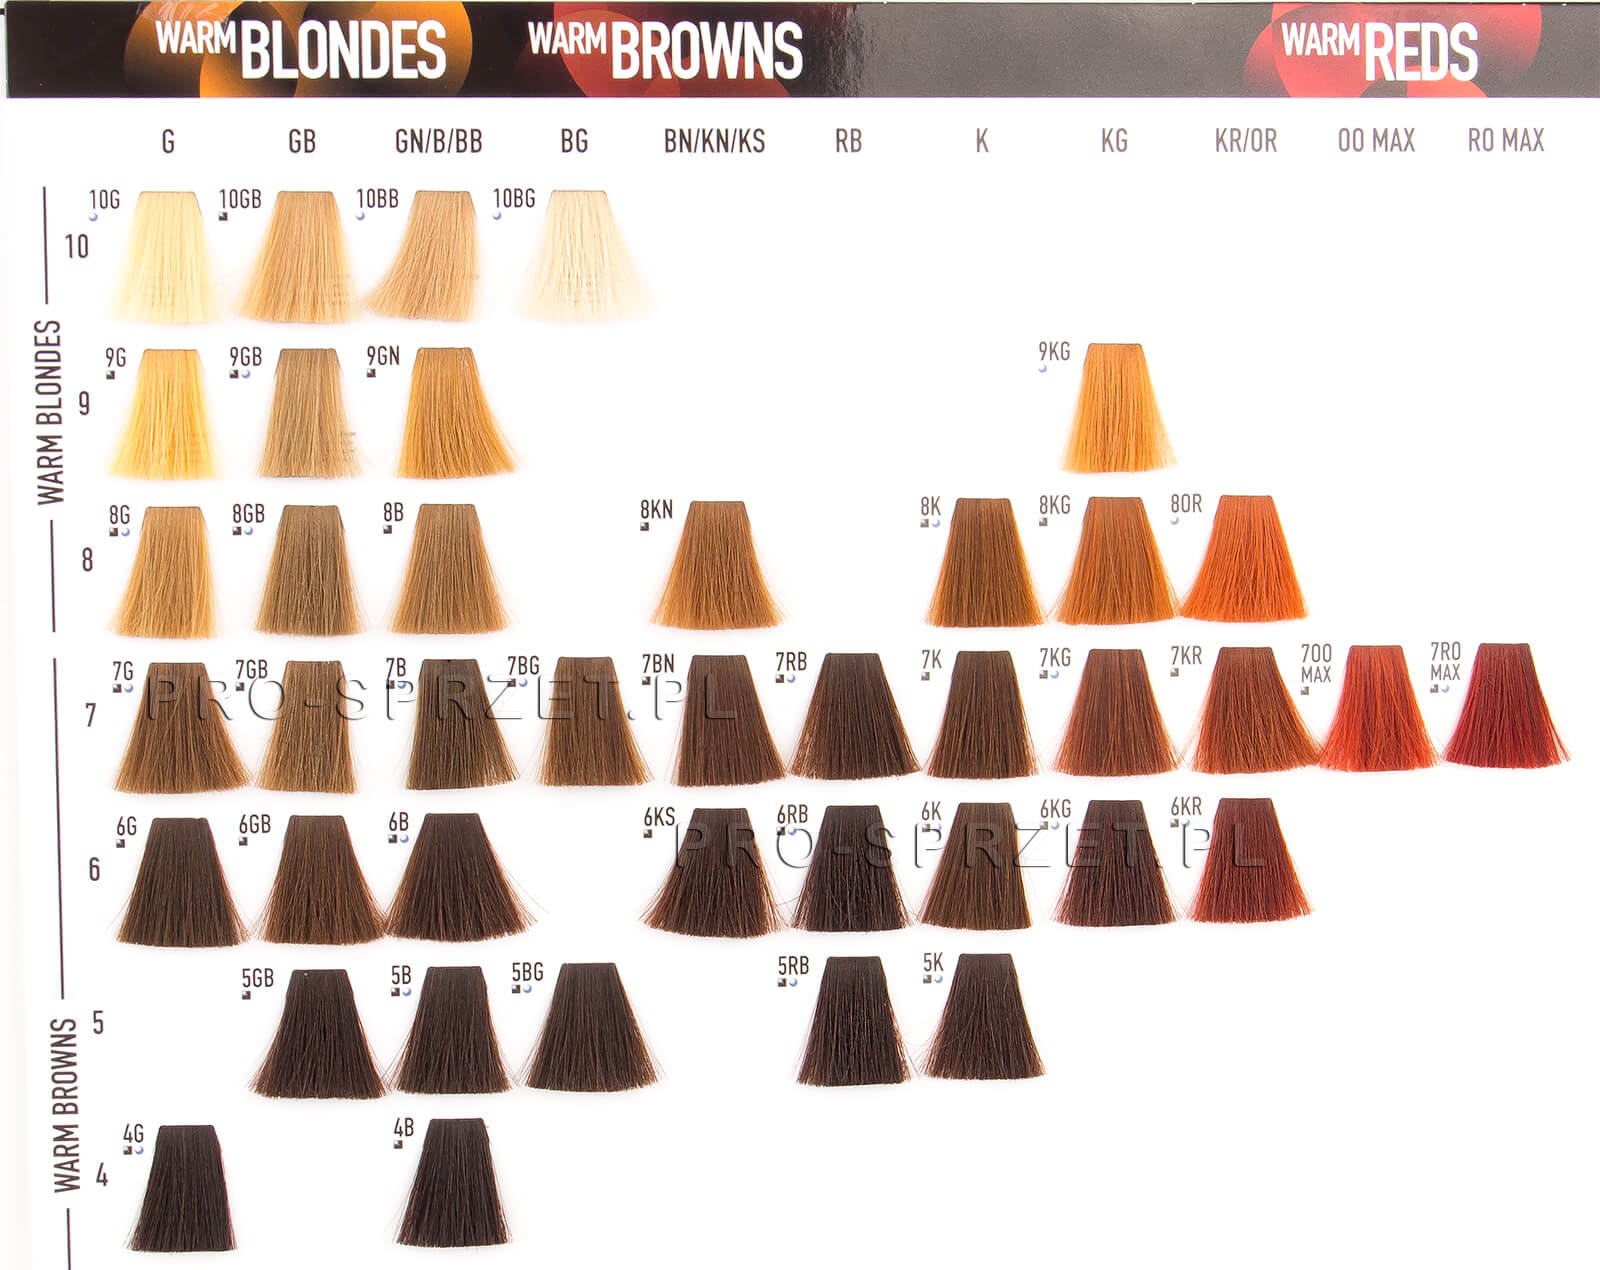 paleta-goldwell-warm-blondes-warm-browns